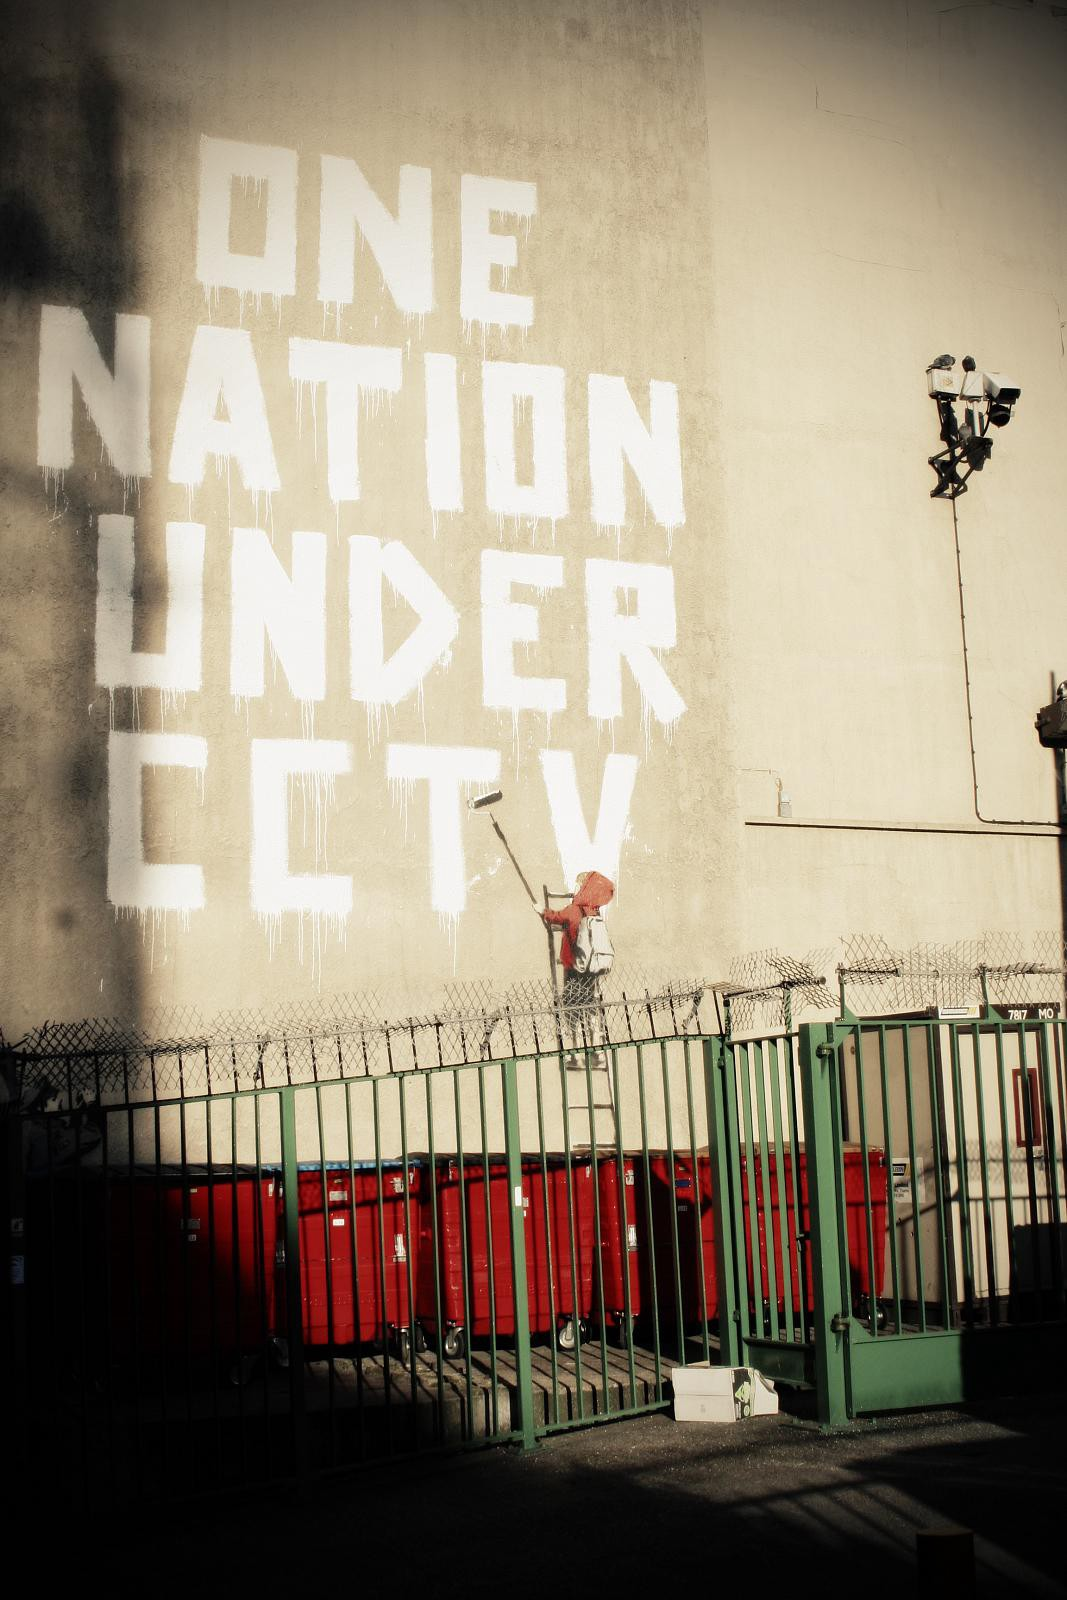 Inside the City That Spies on You